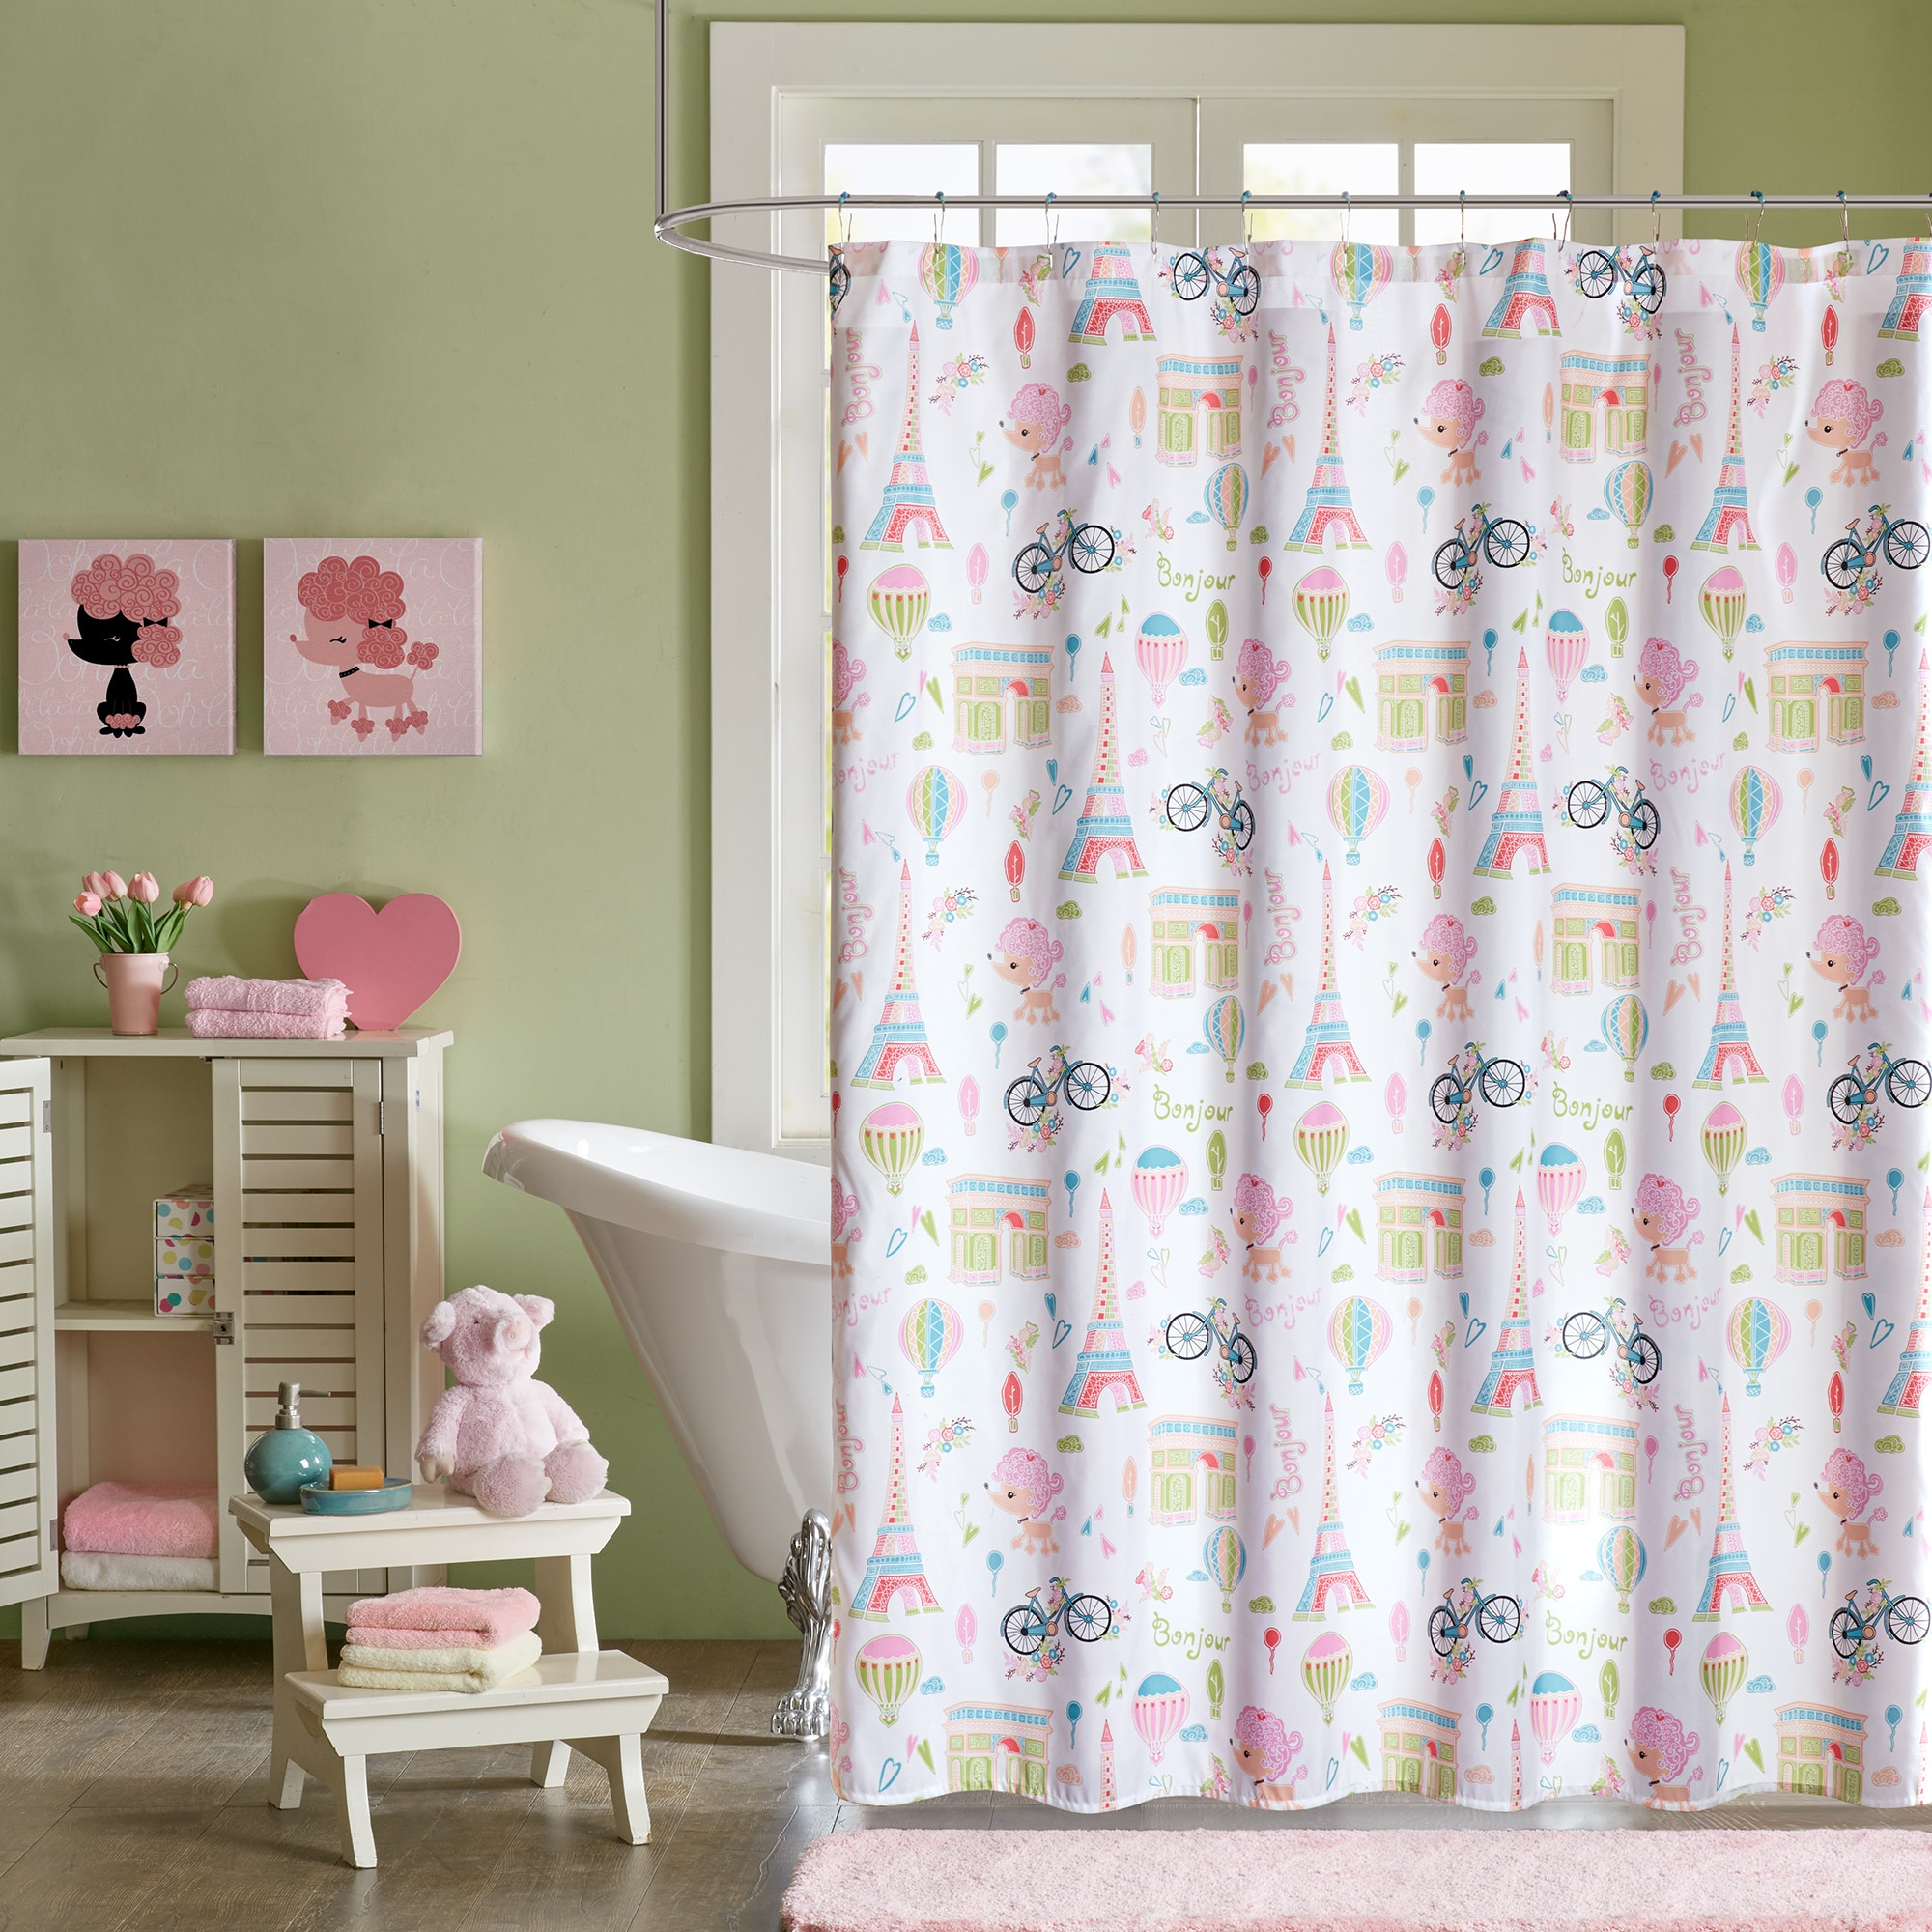 Mi Zone Kids Penelope the Poodle Pink Printed Shower Curtain - Free  Shipping On Orders Over $45 - Overstock.com - 20729943